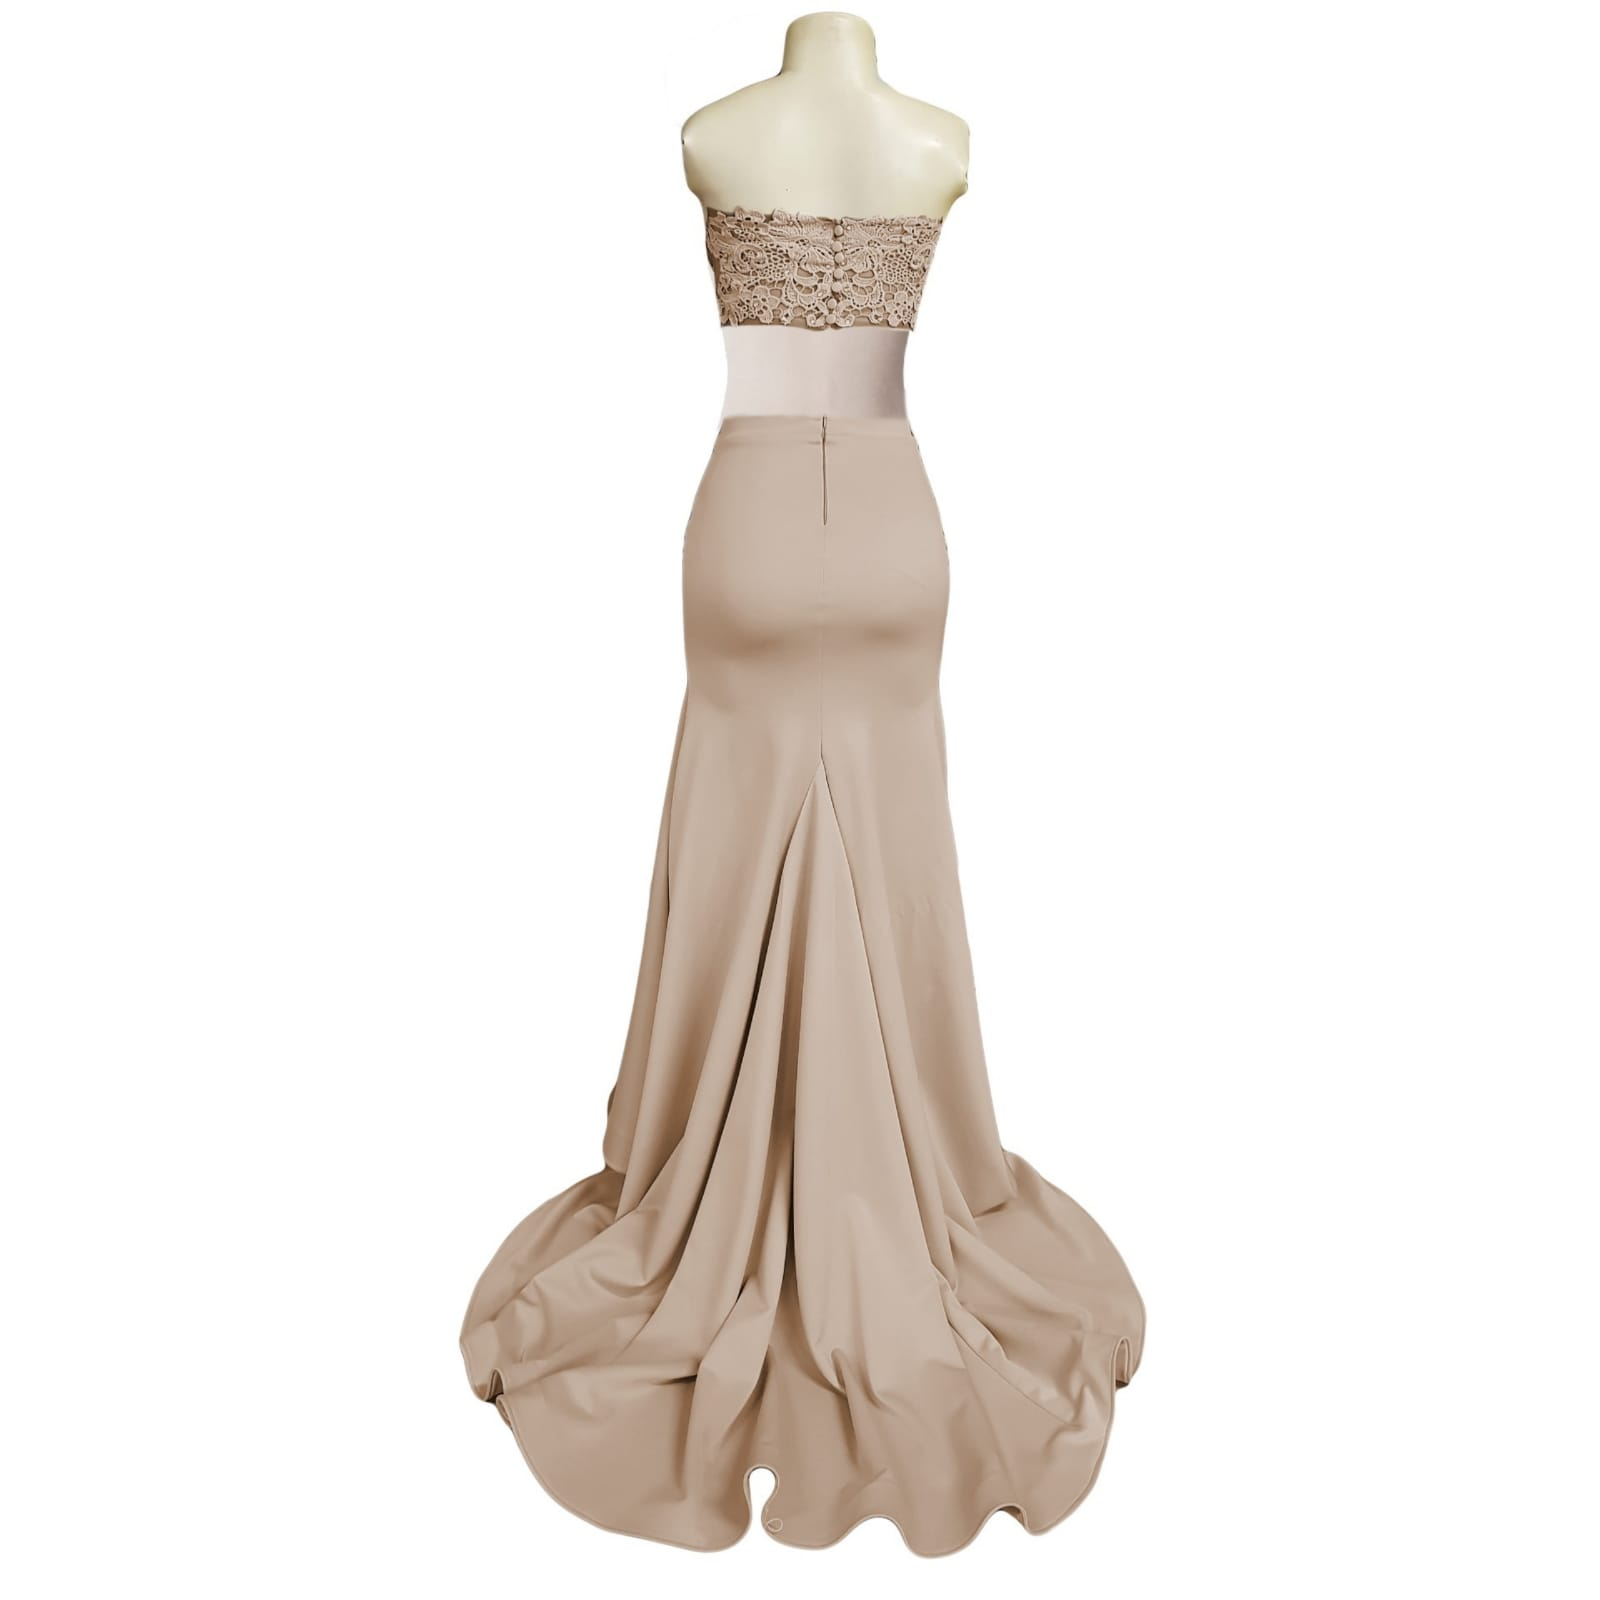 2 piece beige gala dress with high slit 4 2 piece beige gala dress, long skirt with high slit and a long train and waistband. Short lace top with back button detail.